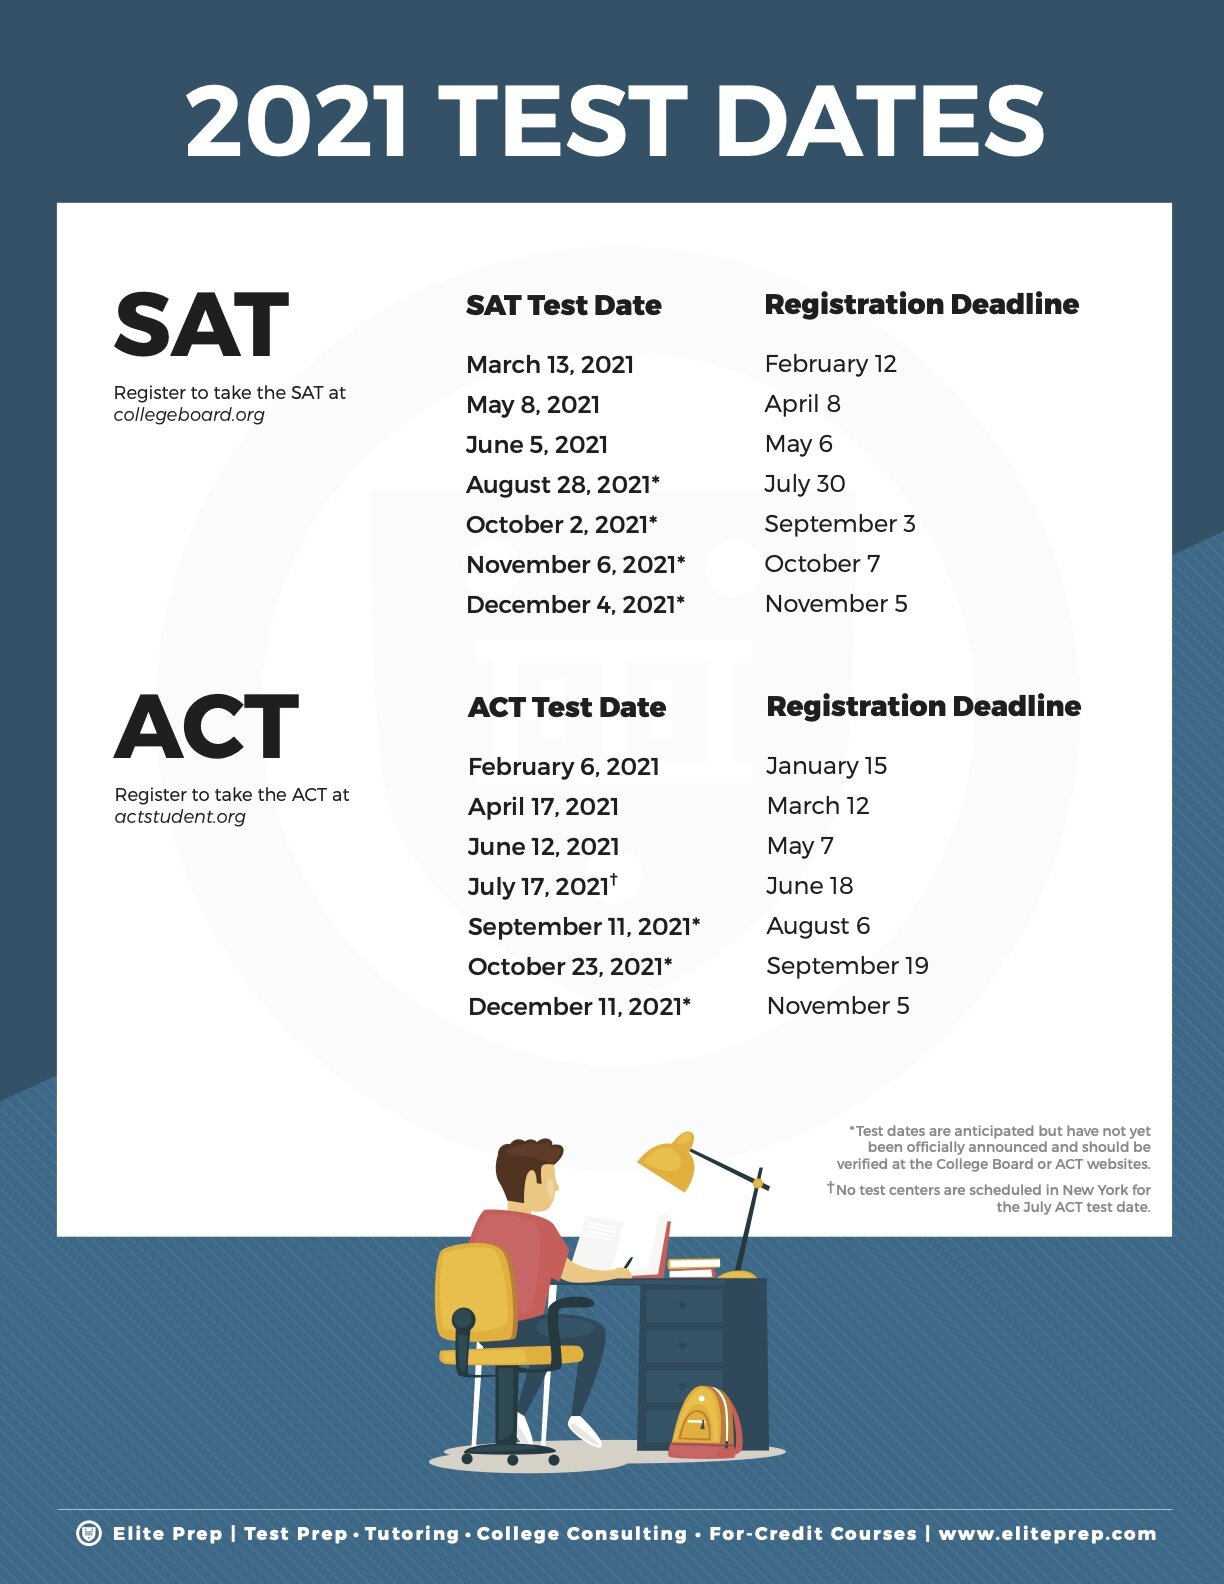 Download a Printable PDF of 2021 Test Dates »